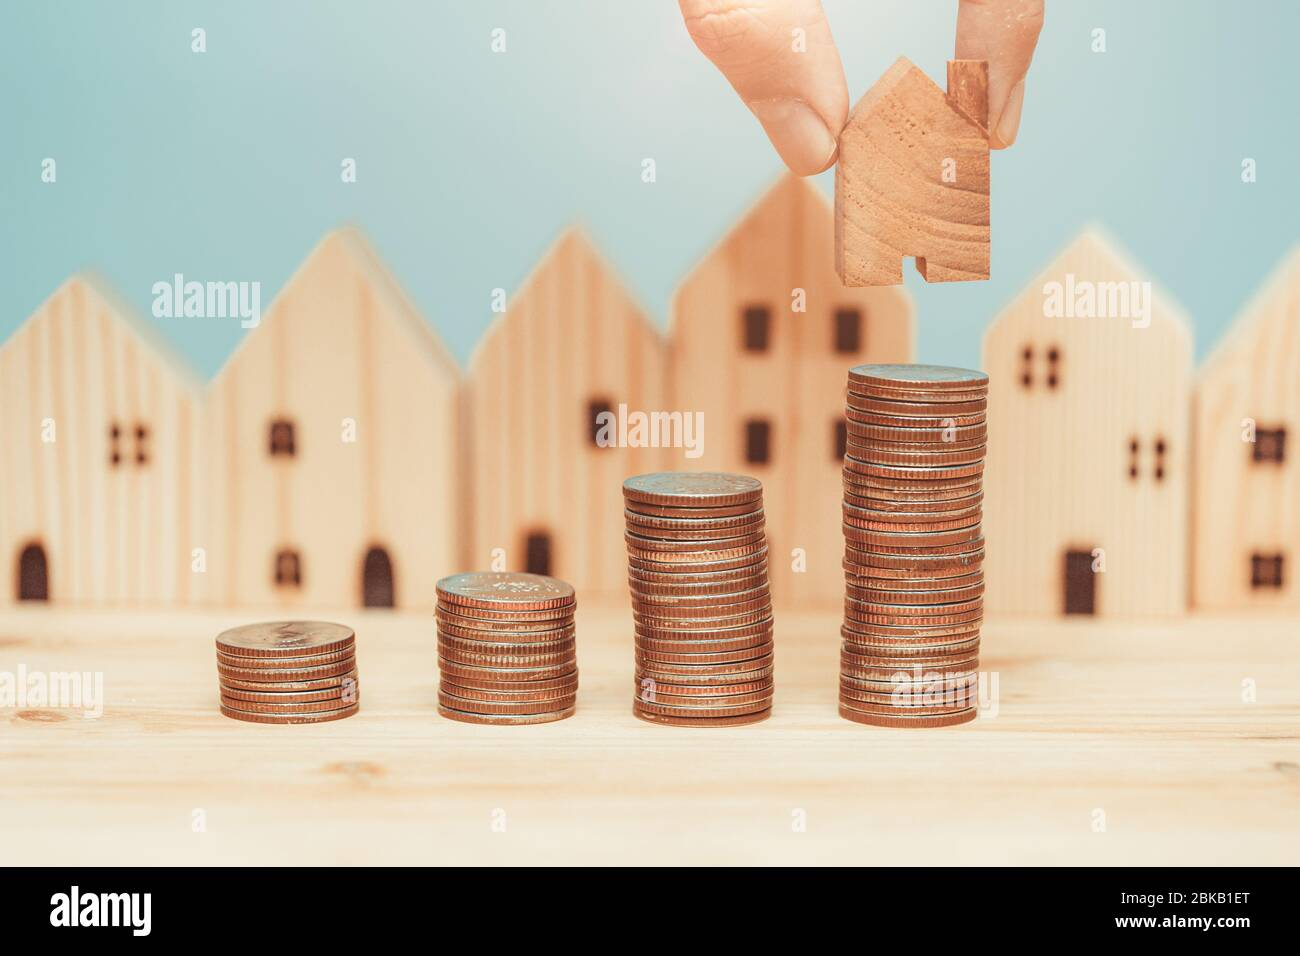 Coin stack with wooden home model for saving money to buy a new home concept. Stock Photo